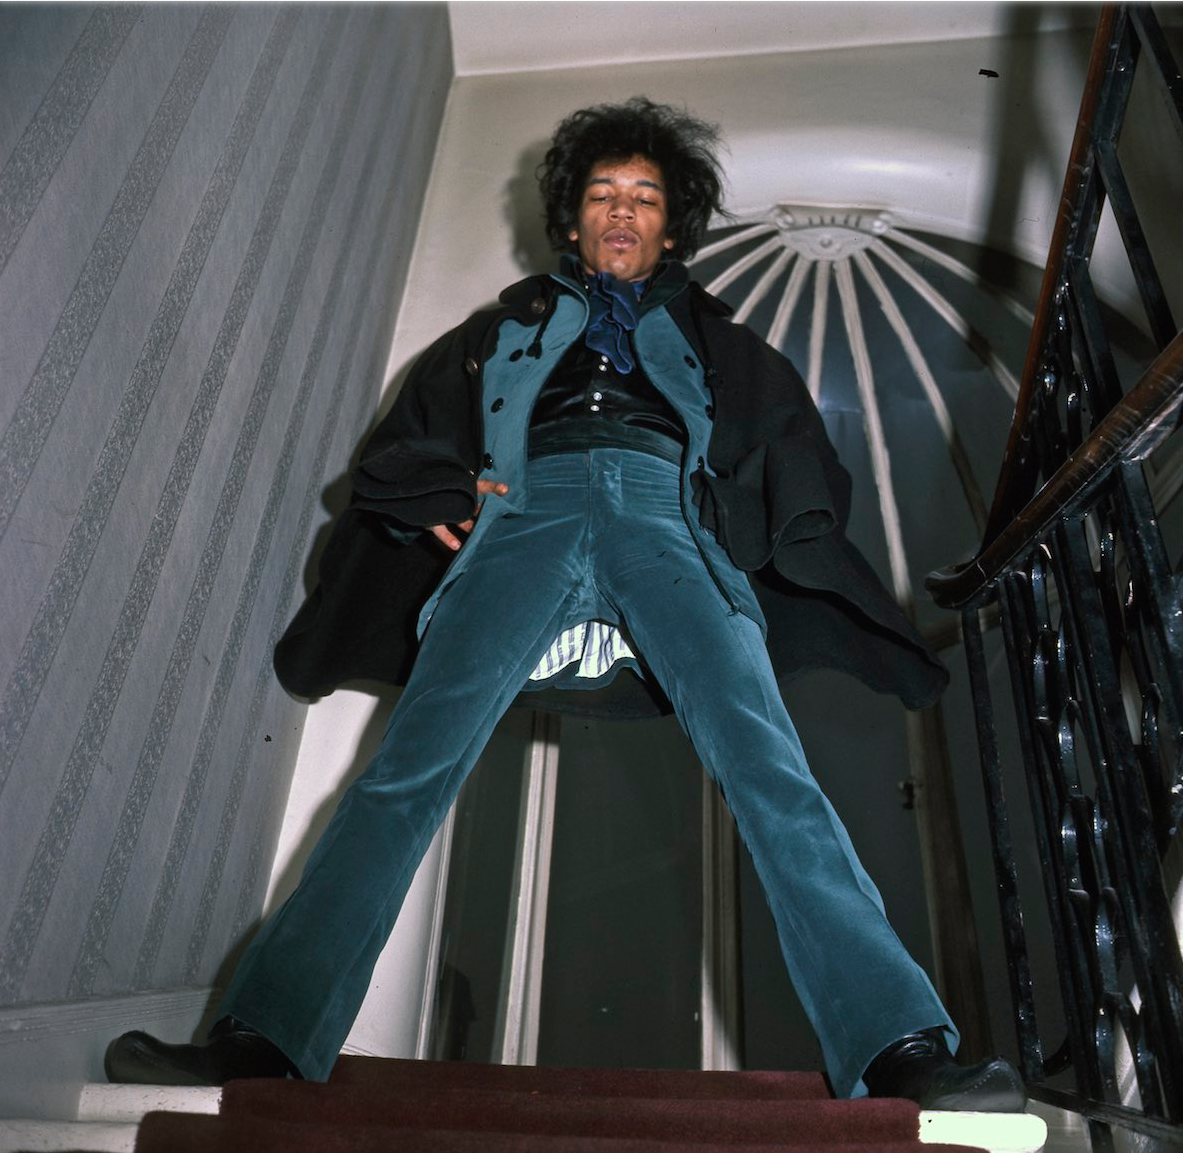 asvof-2015-04-17-1967_hanging_out_with_hendrix_jimi_puts_the_kettle_on_at_34_montagu_square_by_amanda_uren-diane_pernet-1001751778.png